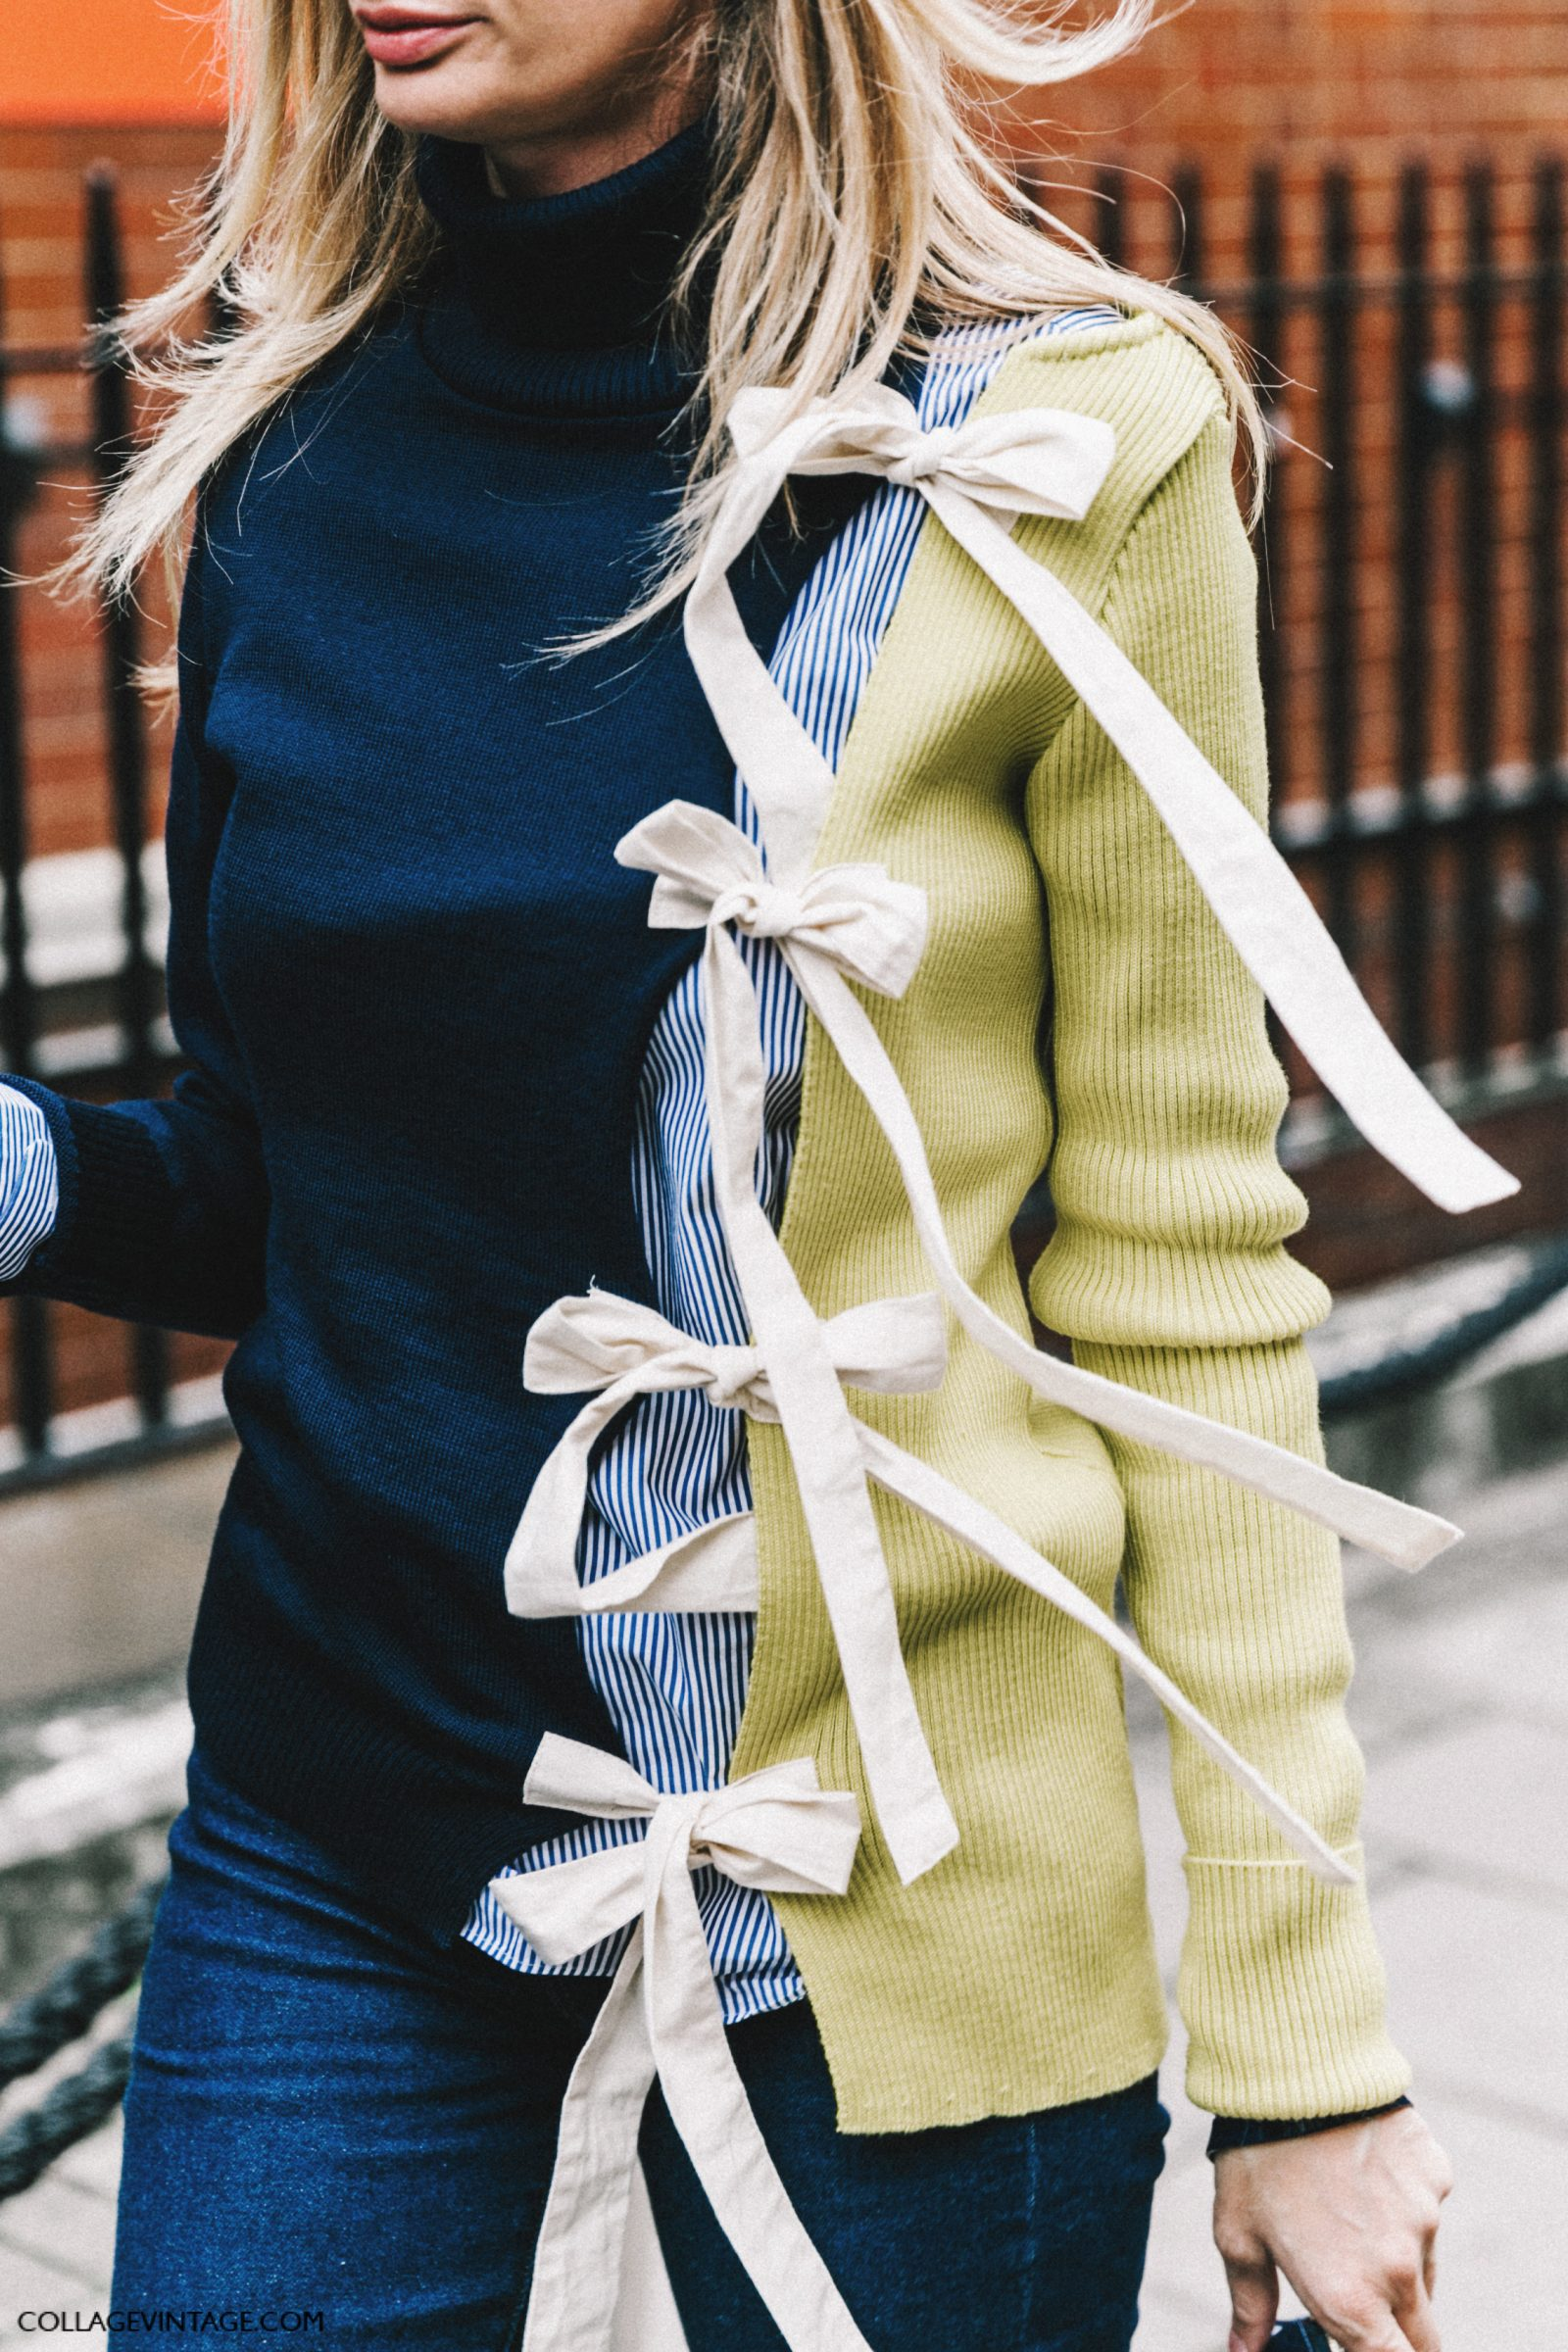 lfw-london_fashion_week_ss17-street_style-outfits-collage_vintage-vintage-jw_anderson-house_of_holland-57